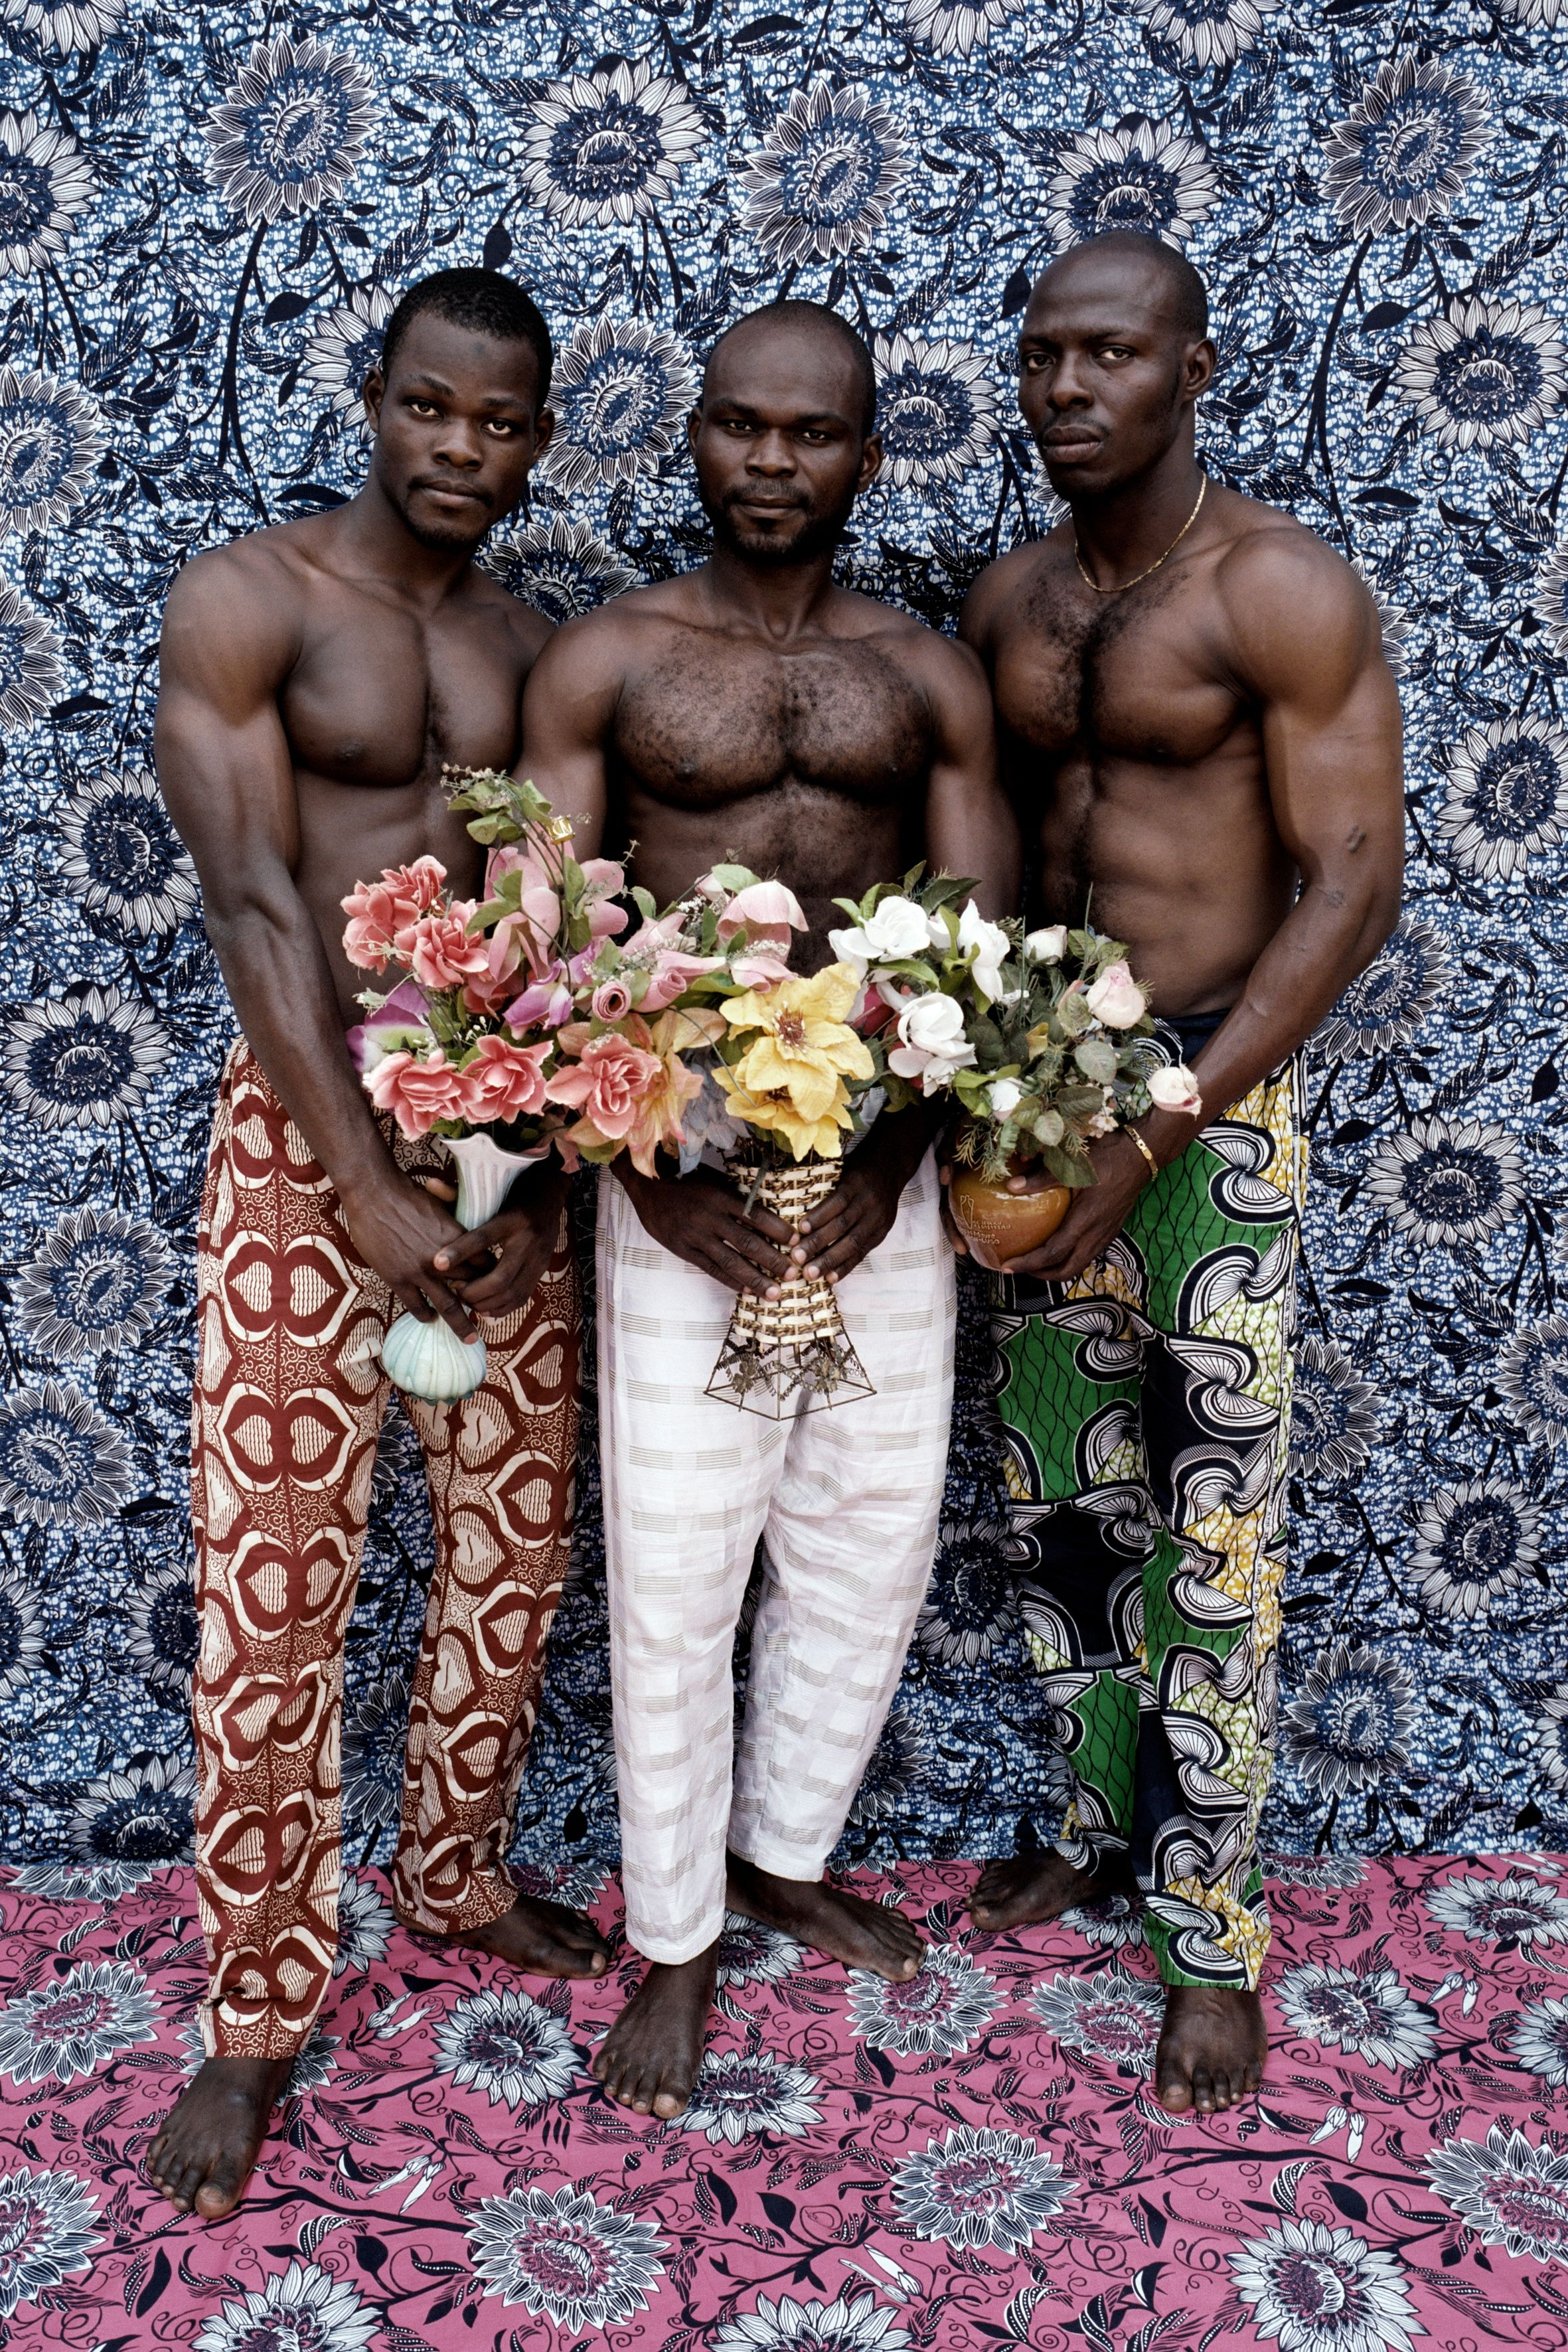 Of Masks And Musclemen 50 Years Of West African Studio Shots In